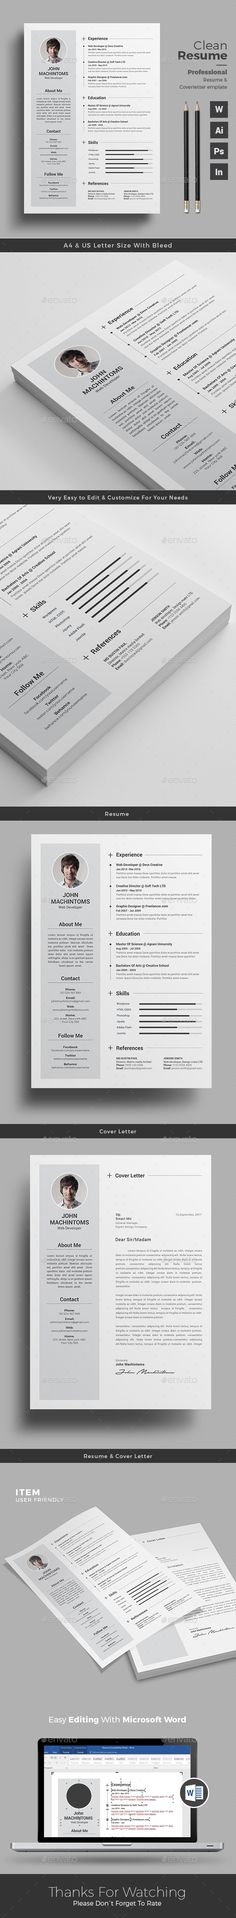 Resume Resume and Stationery - how to make resume on word